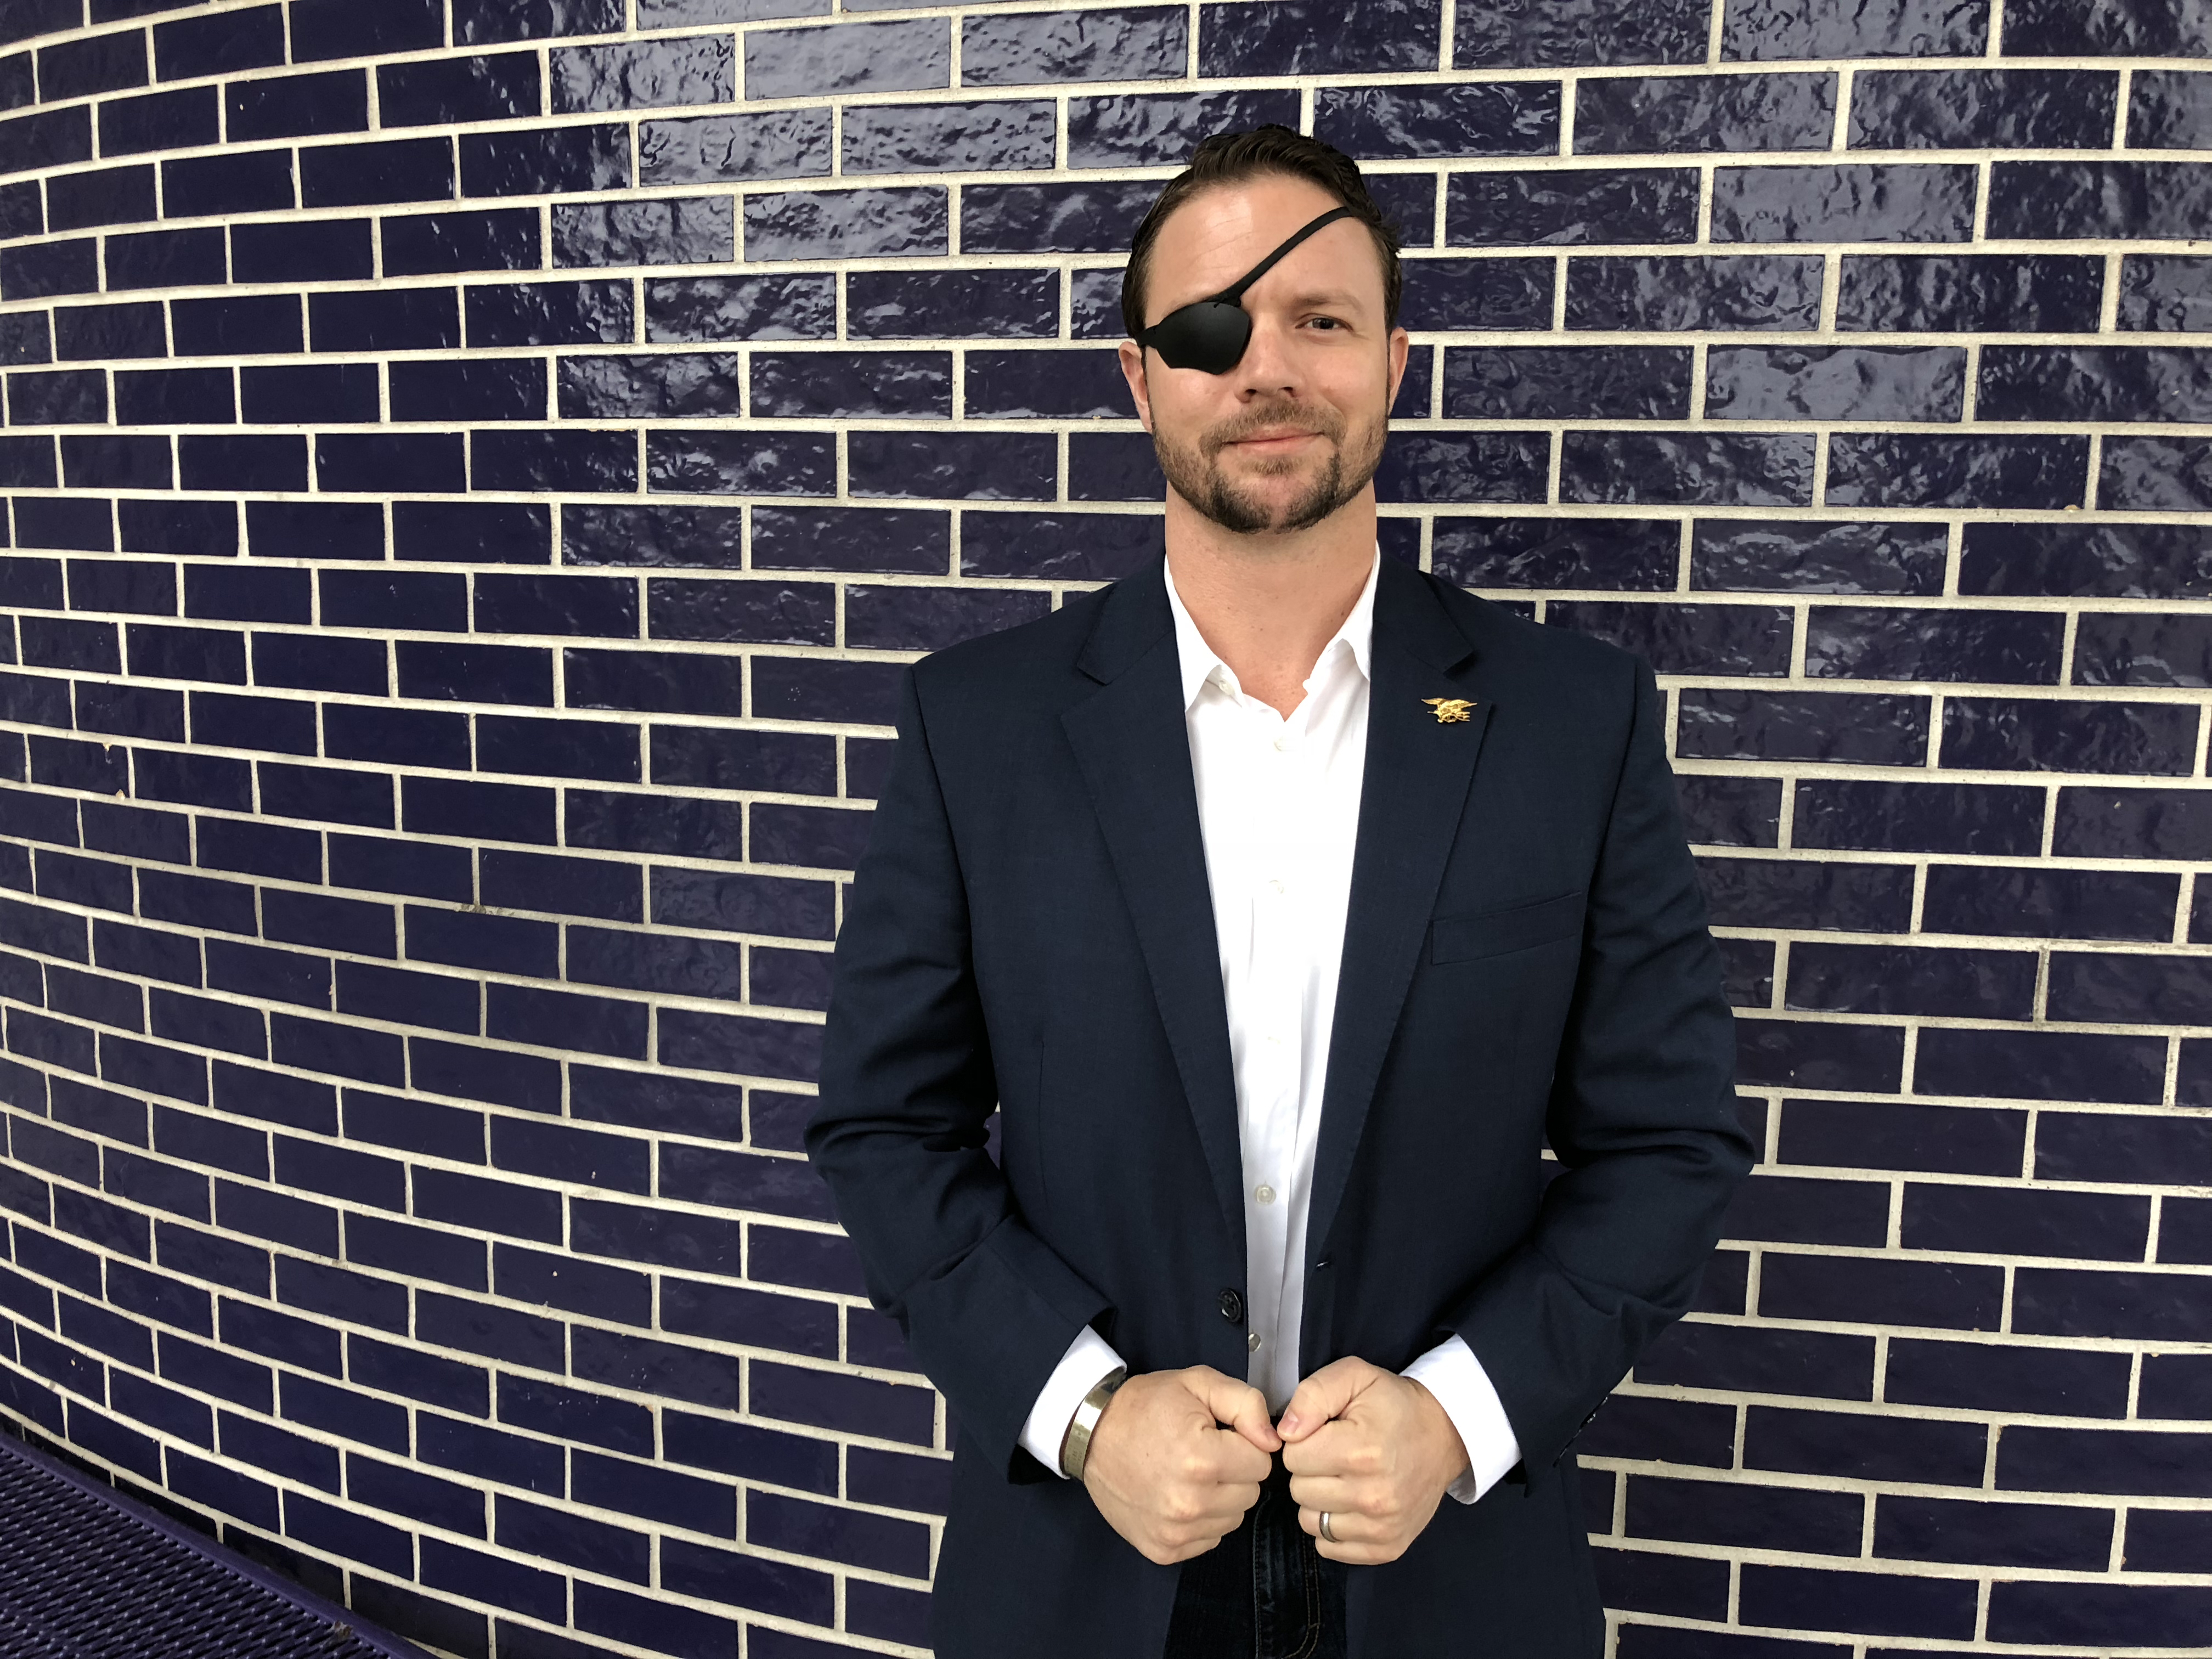 Dan Crenshaw, a former Navy SEAL, was elected to Congress from the Houston area after running for office for the first time.